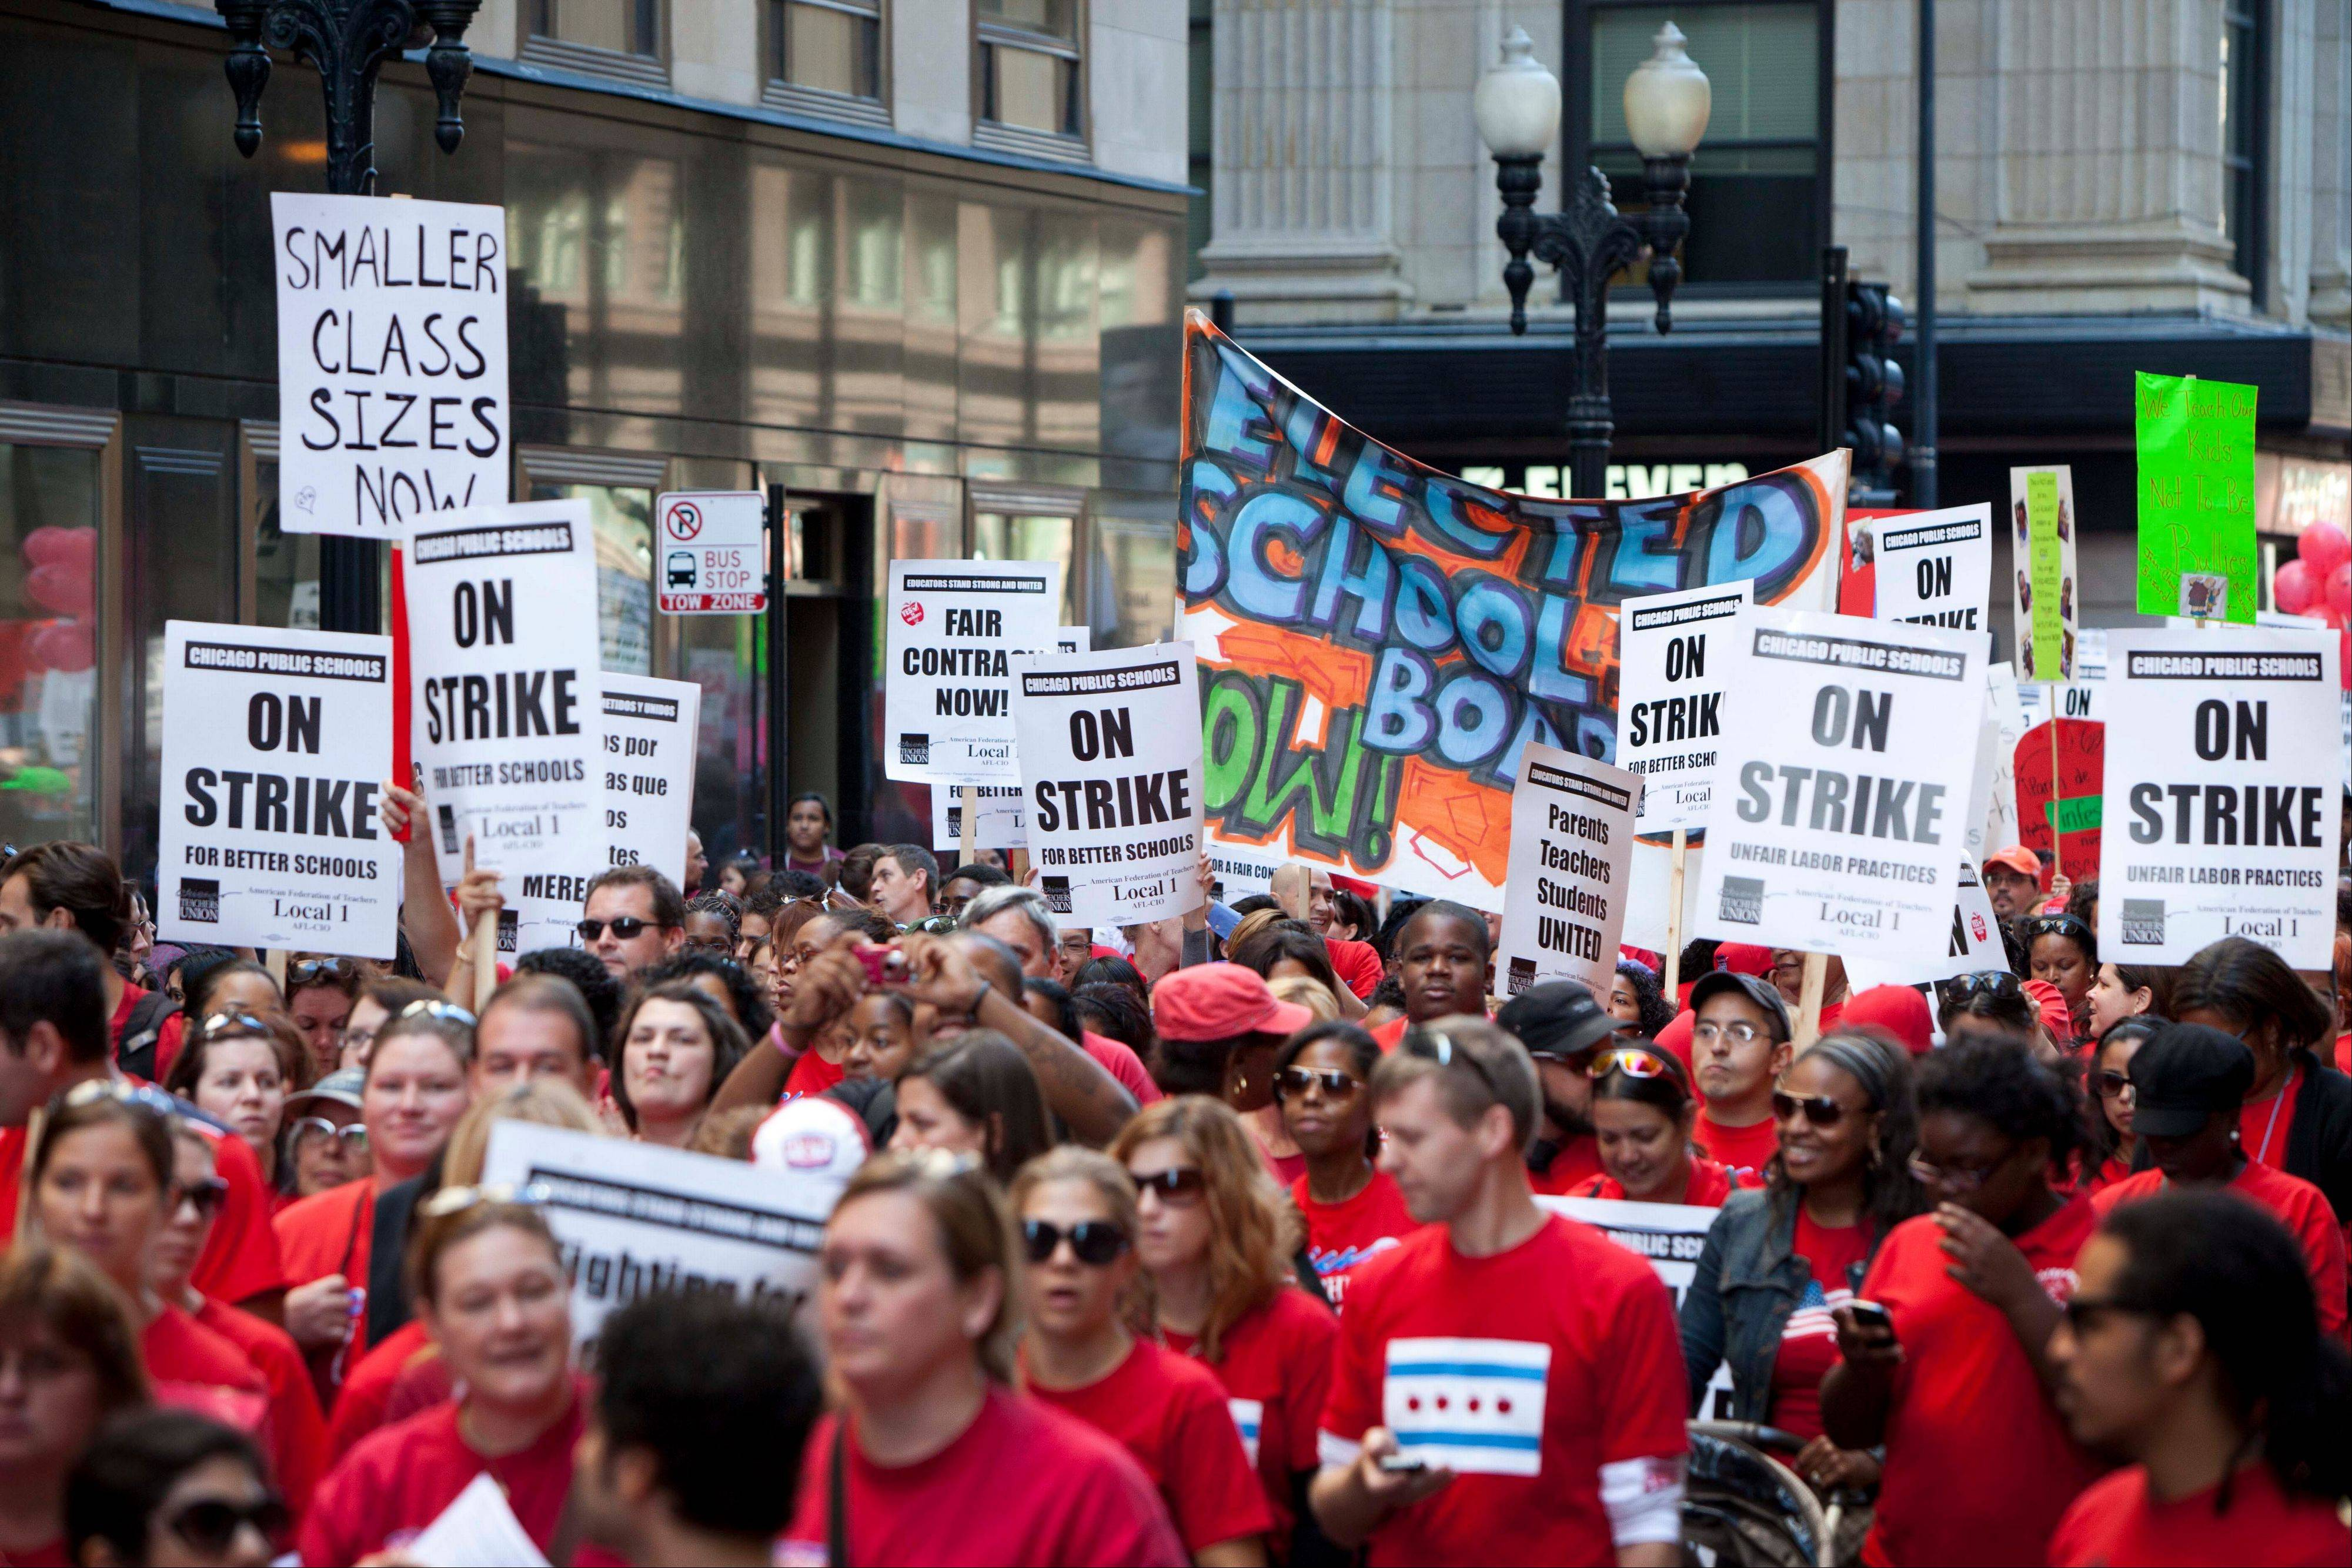 Chicago public school teachers went on strike Monday for the first time in 25 years.